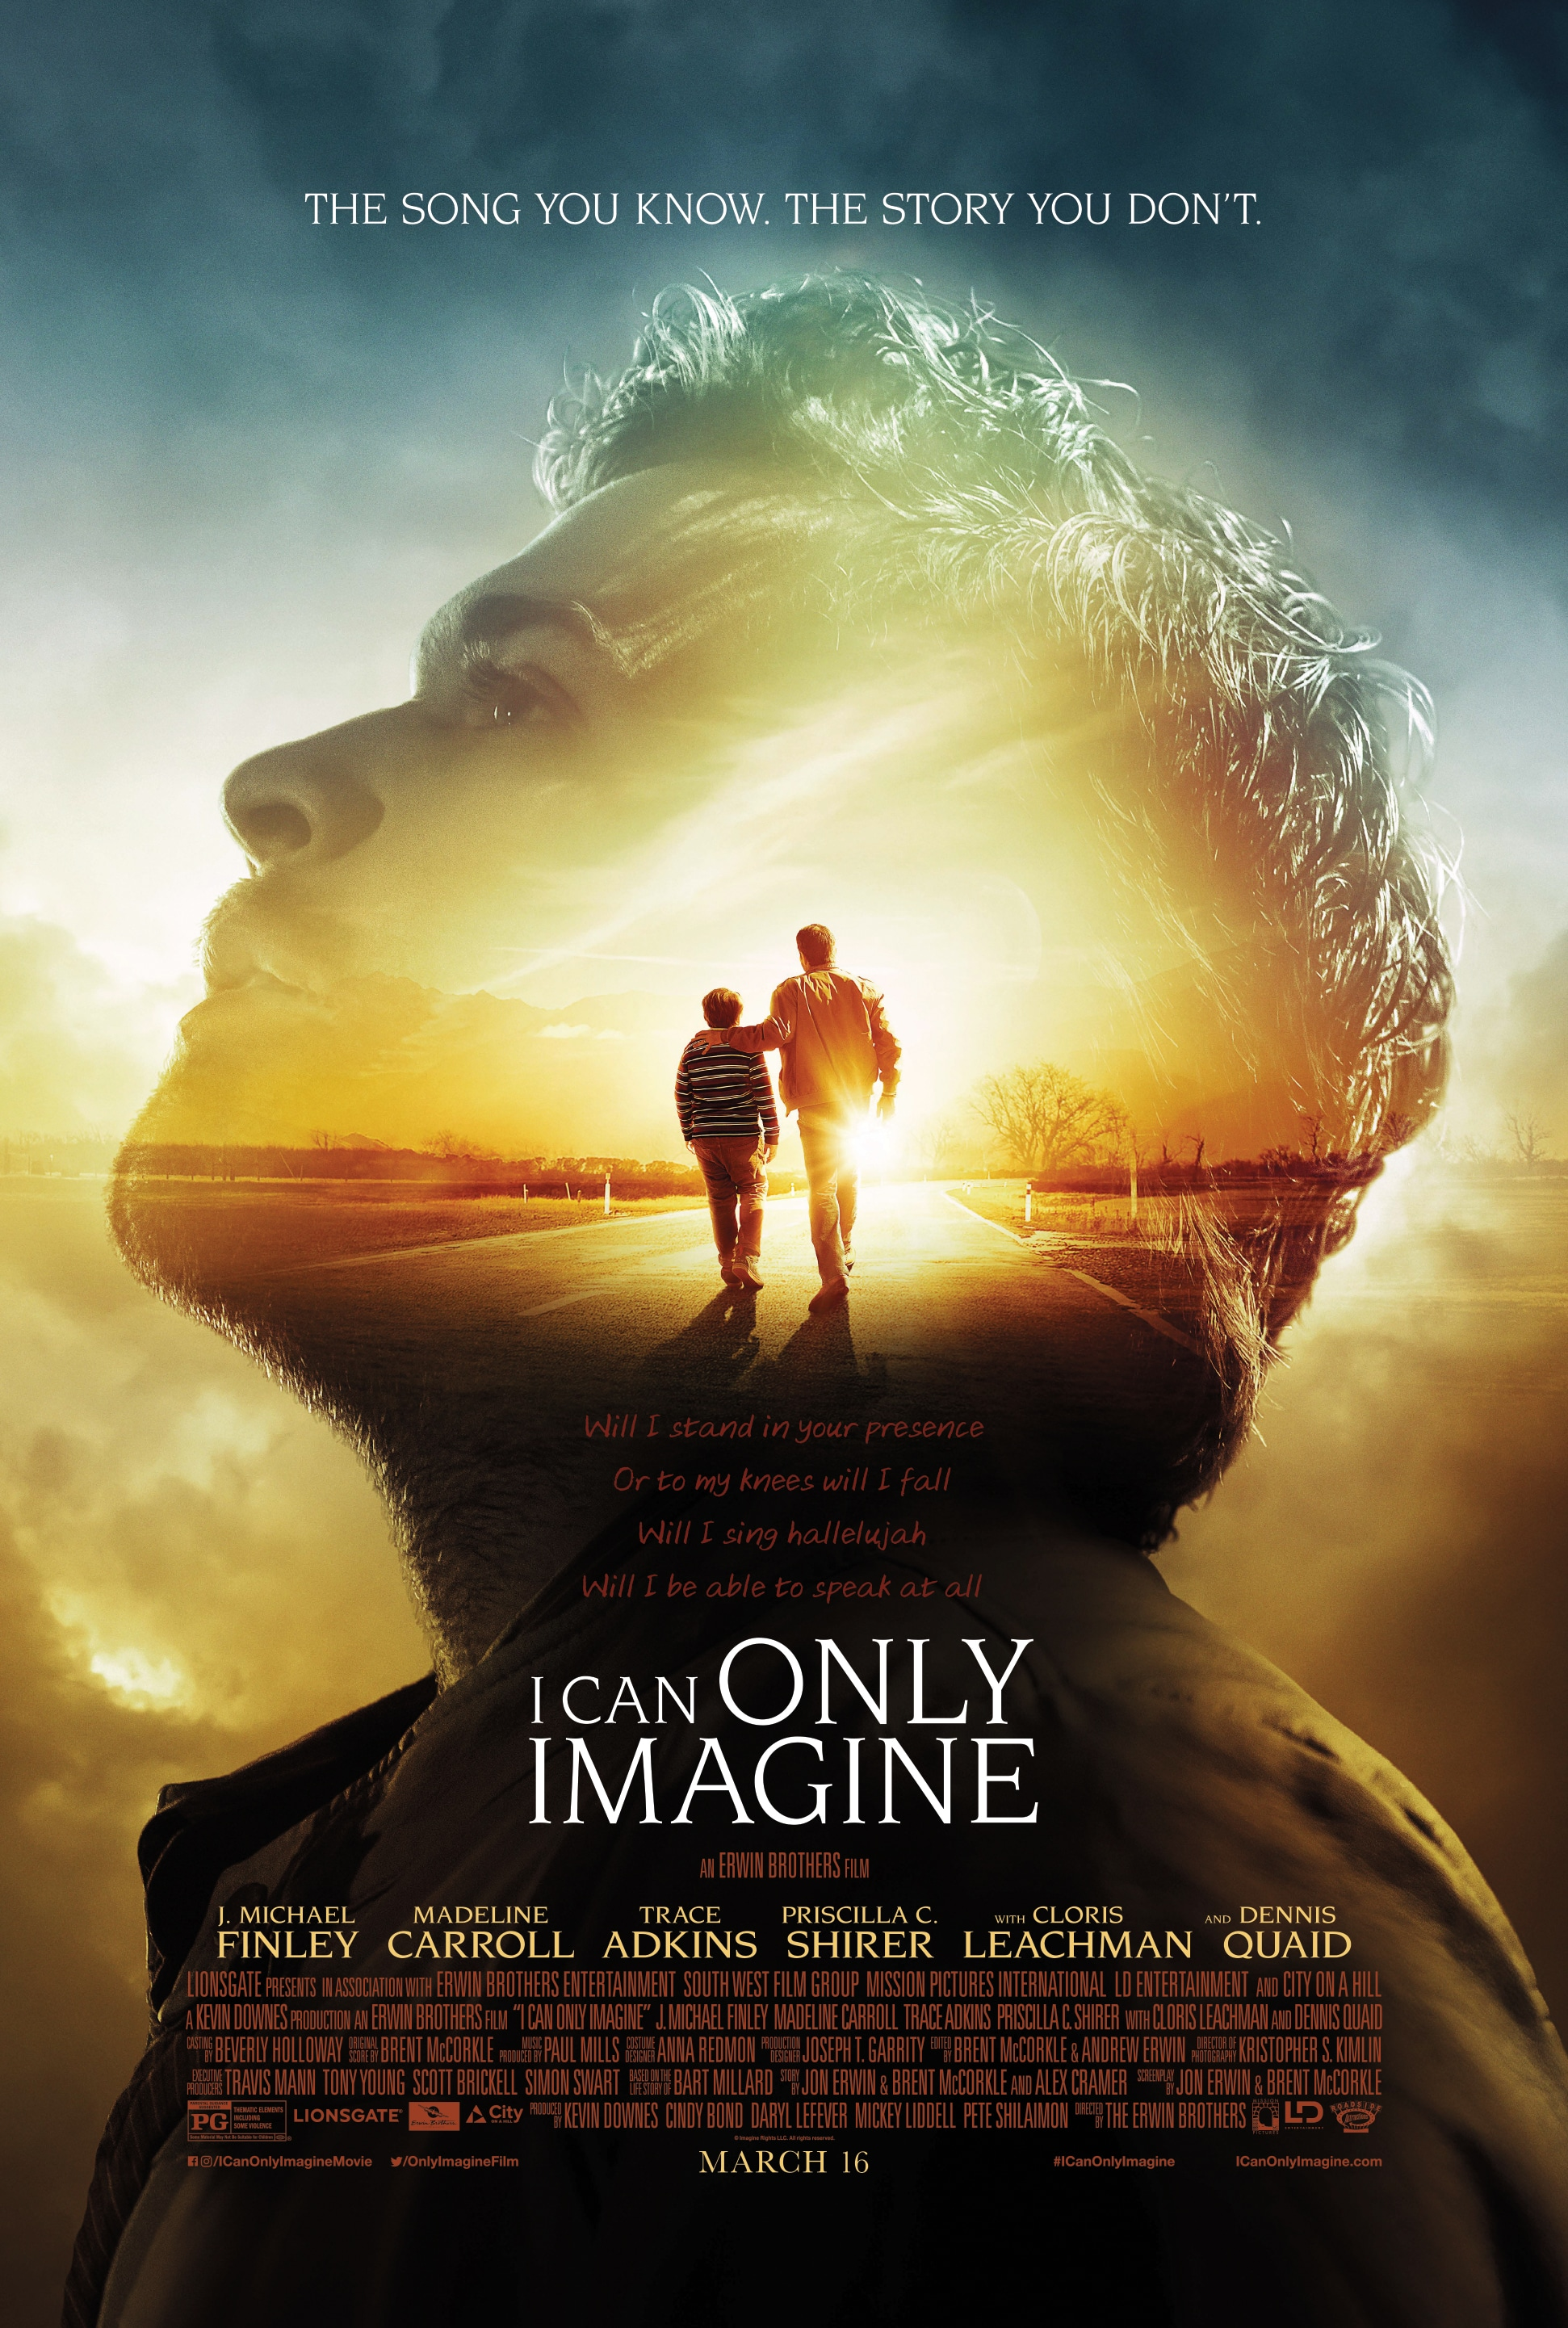 I CAN ONLY IMAGINE  in Theaters Nationwide March 16, 2018 #ICanOnlyImagine